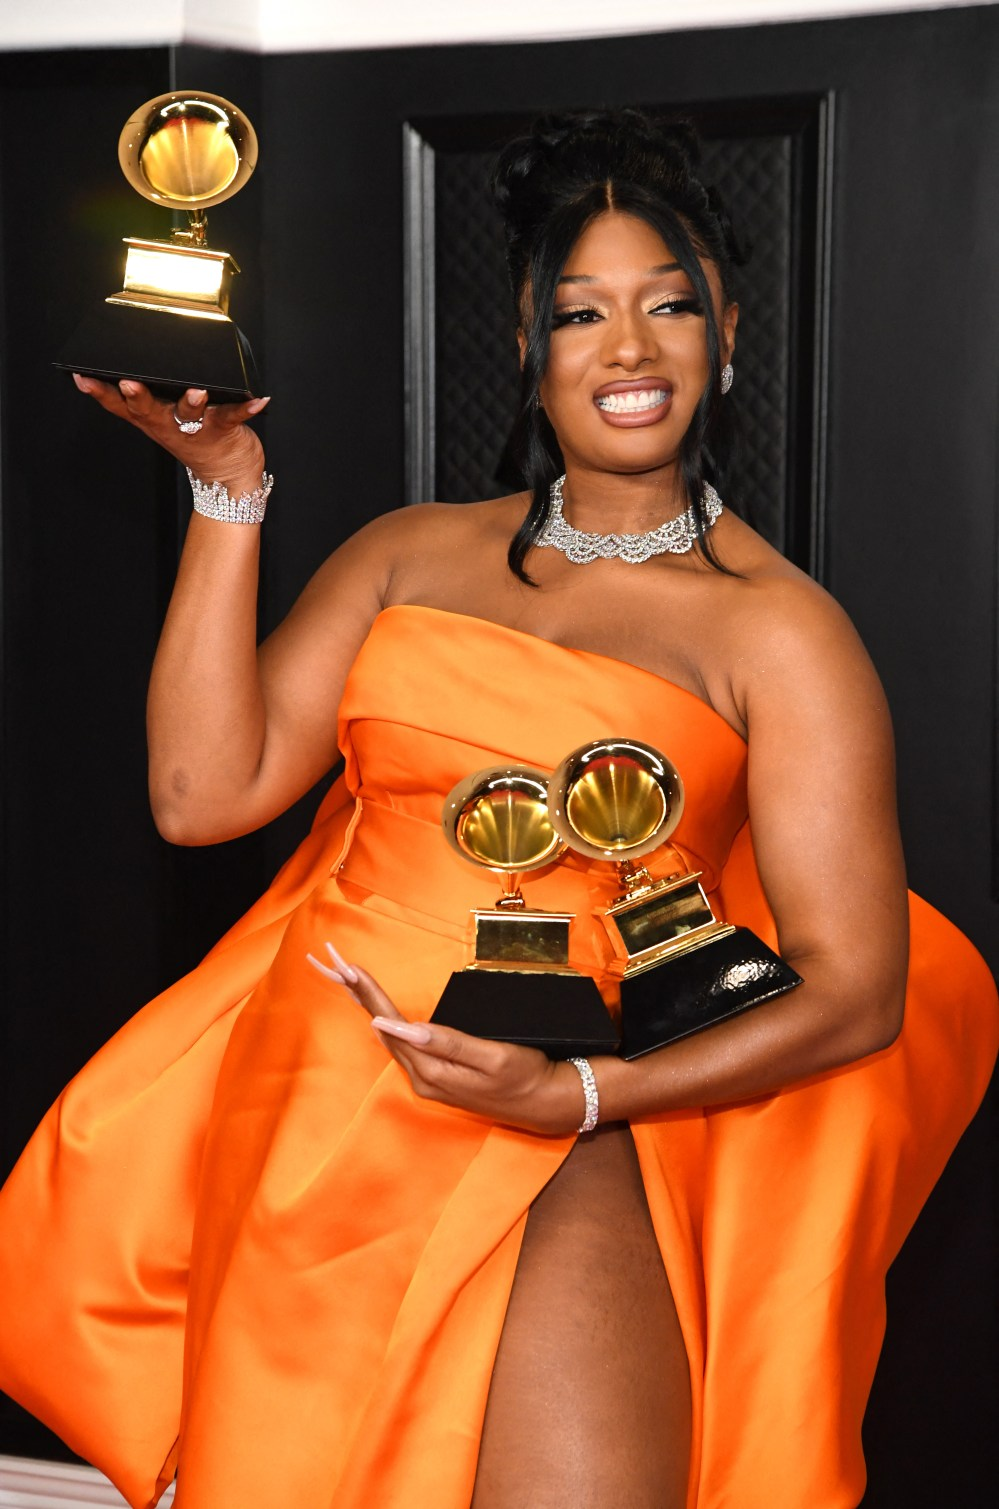 Megan Thee Stallion. PHOTOS BY AFP